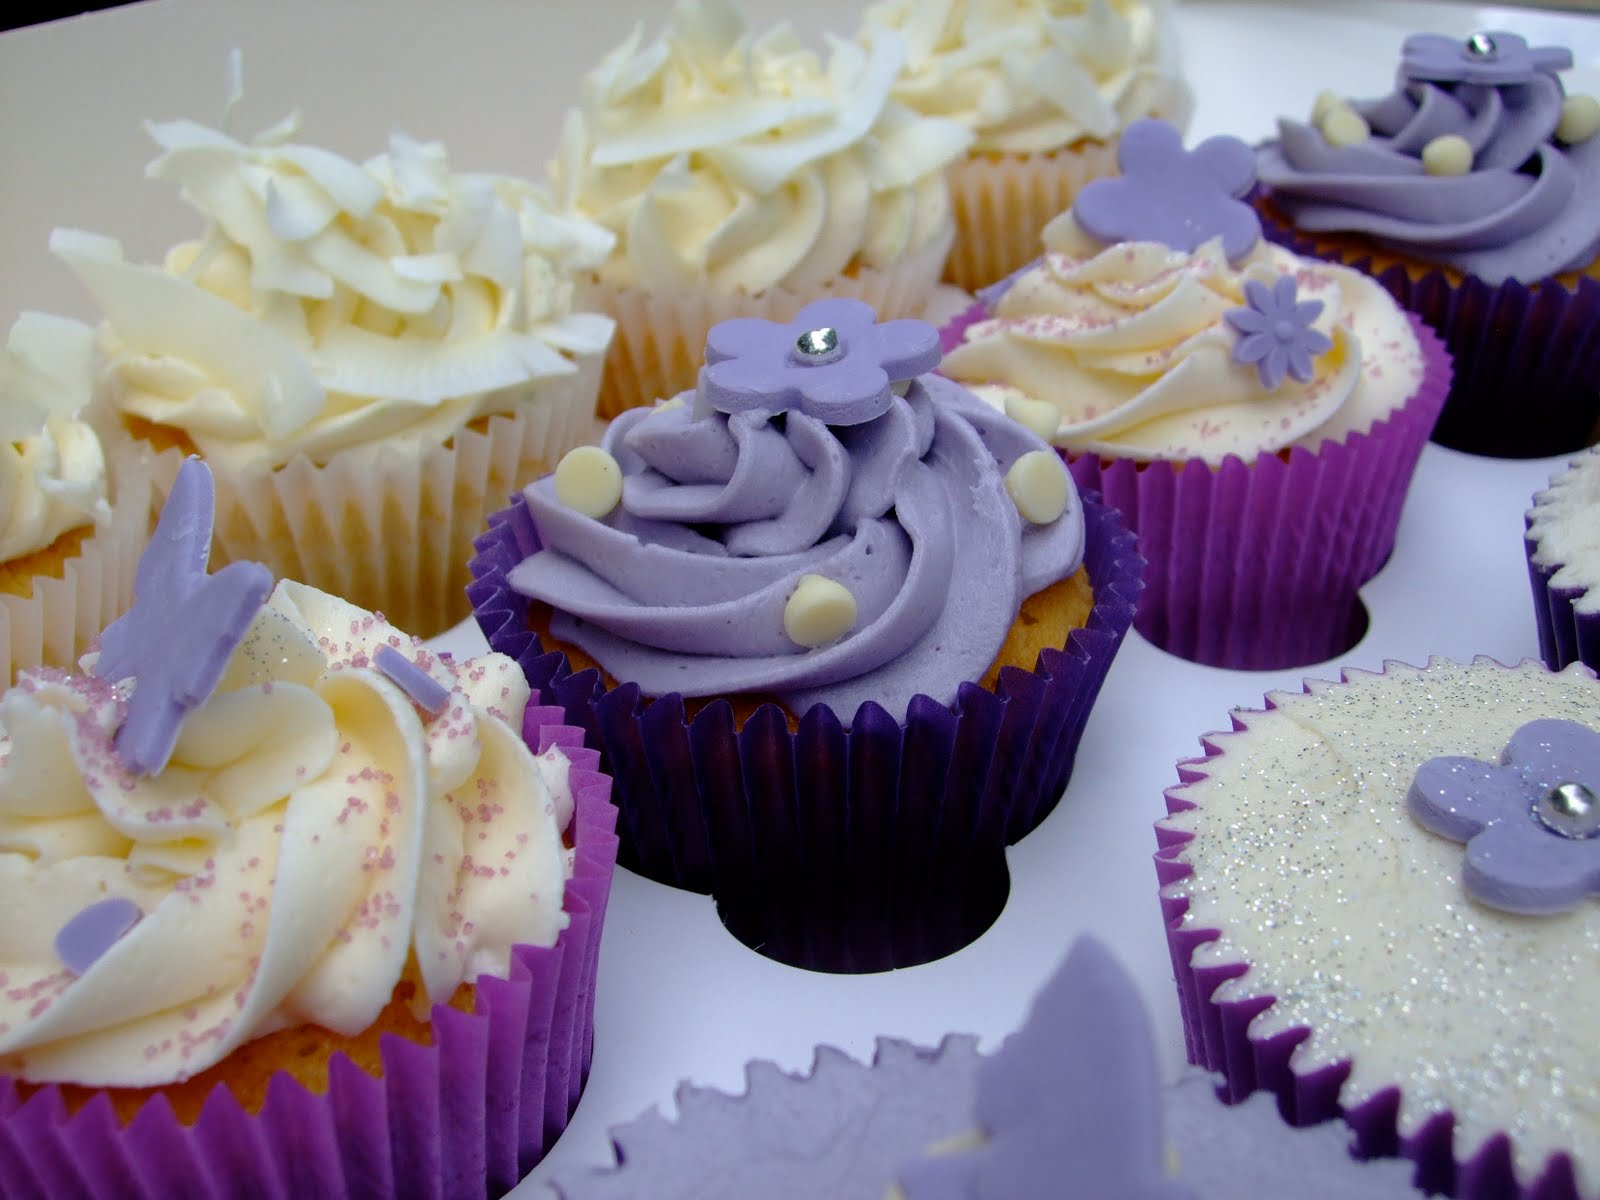 50th Birthday Cupcakes & Colourful Cupcakes of Newbury: 50th Birthday Cupcakes